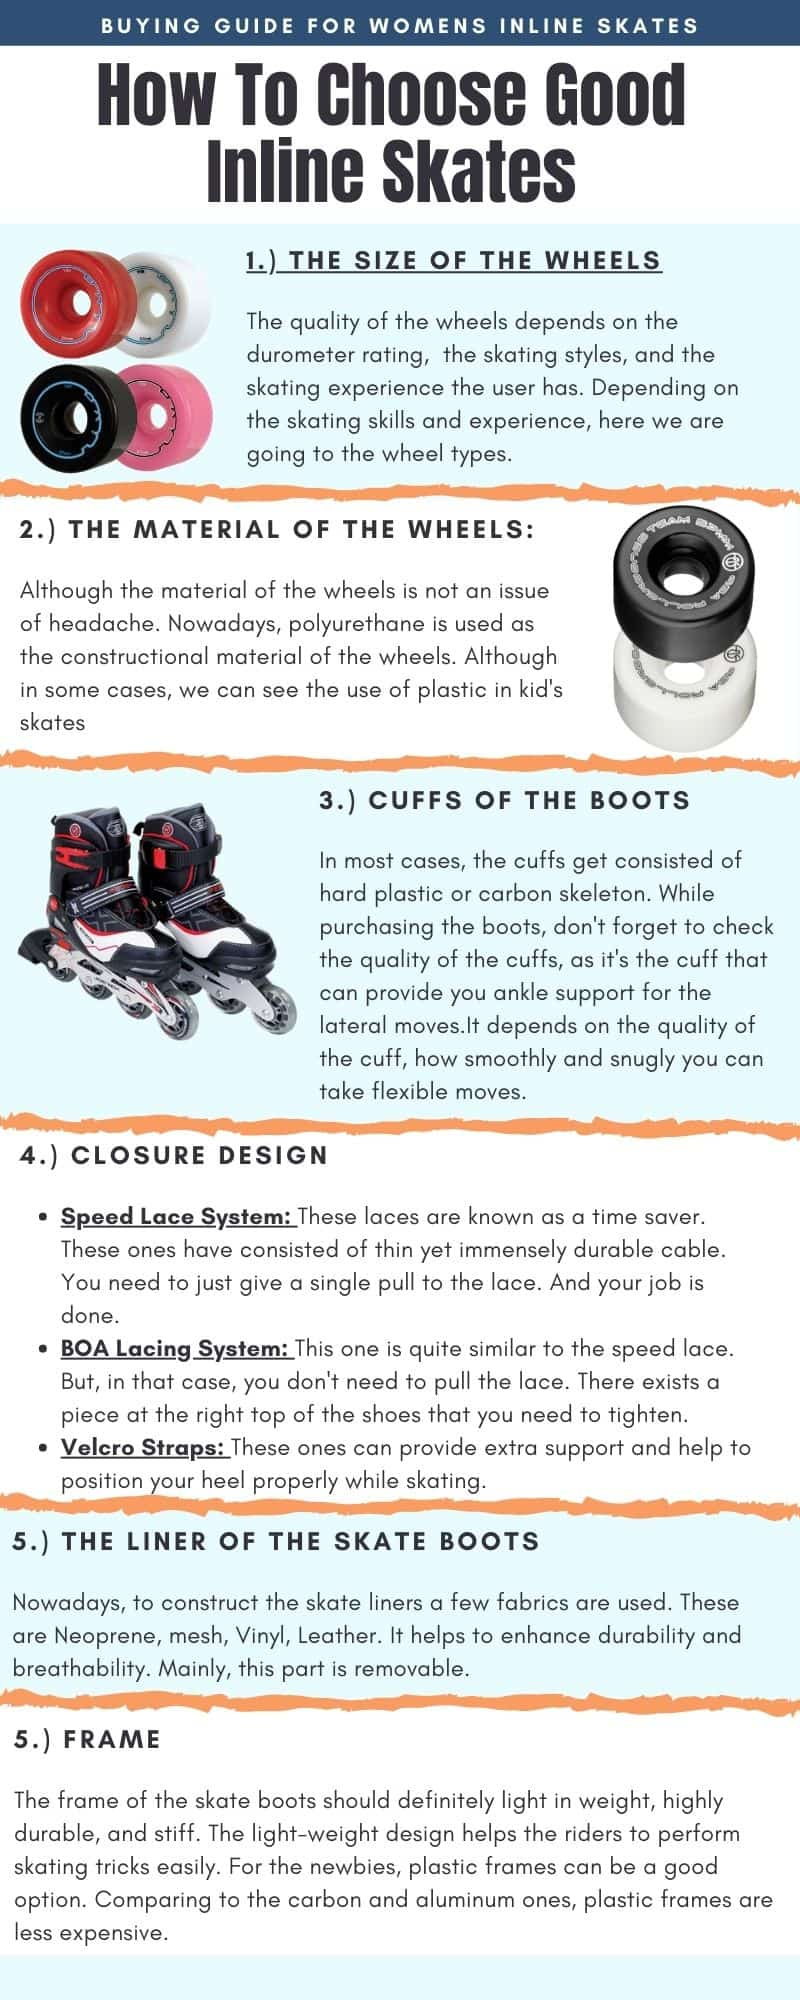 Buying Guide for Womens Inline Skates